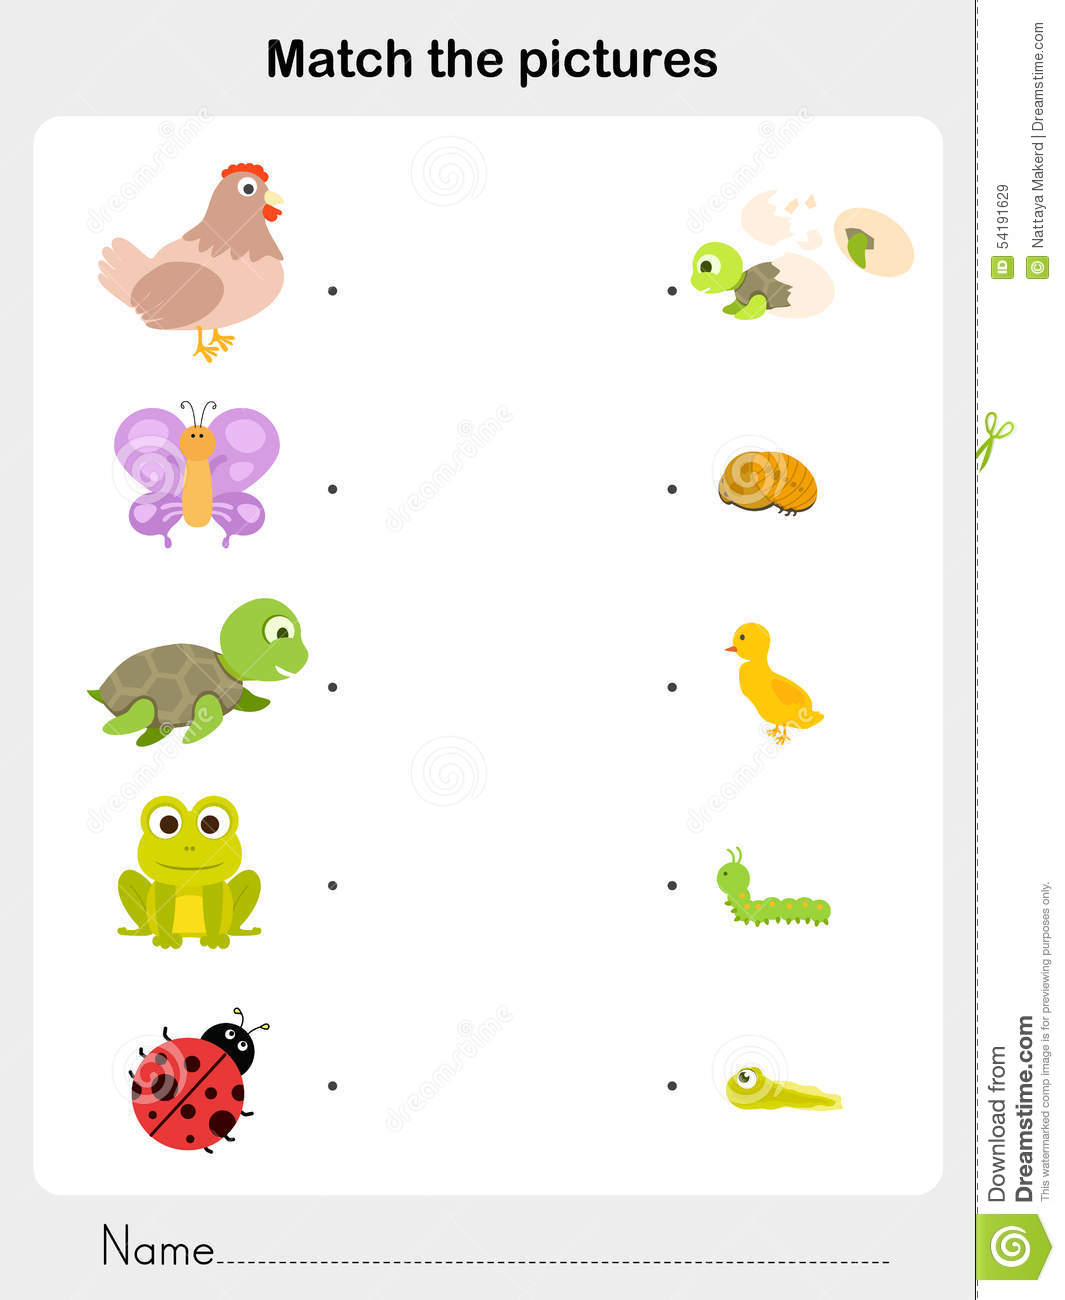 a study on frogs and its life cycle This quiz concludes a lesson on a the life cycle of a frog this will allow the students and teacher to assess their own knowledge of this topic good luck.